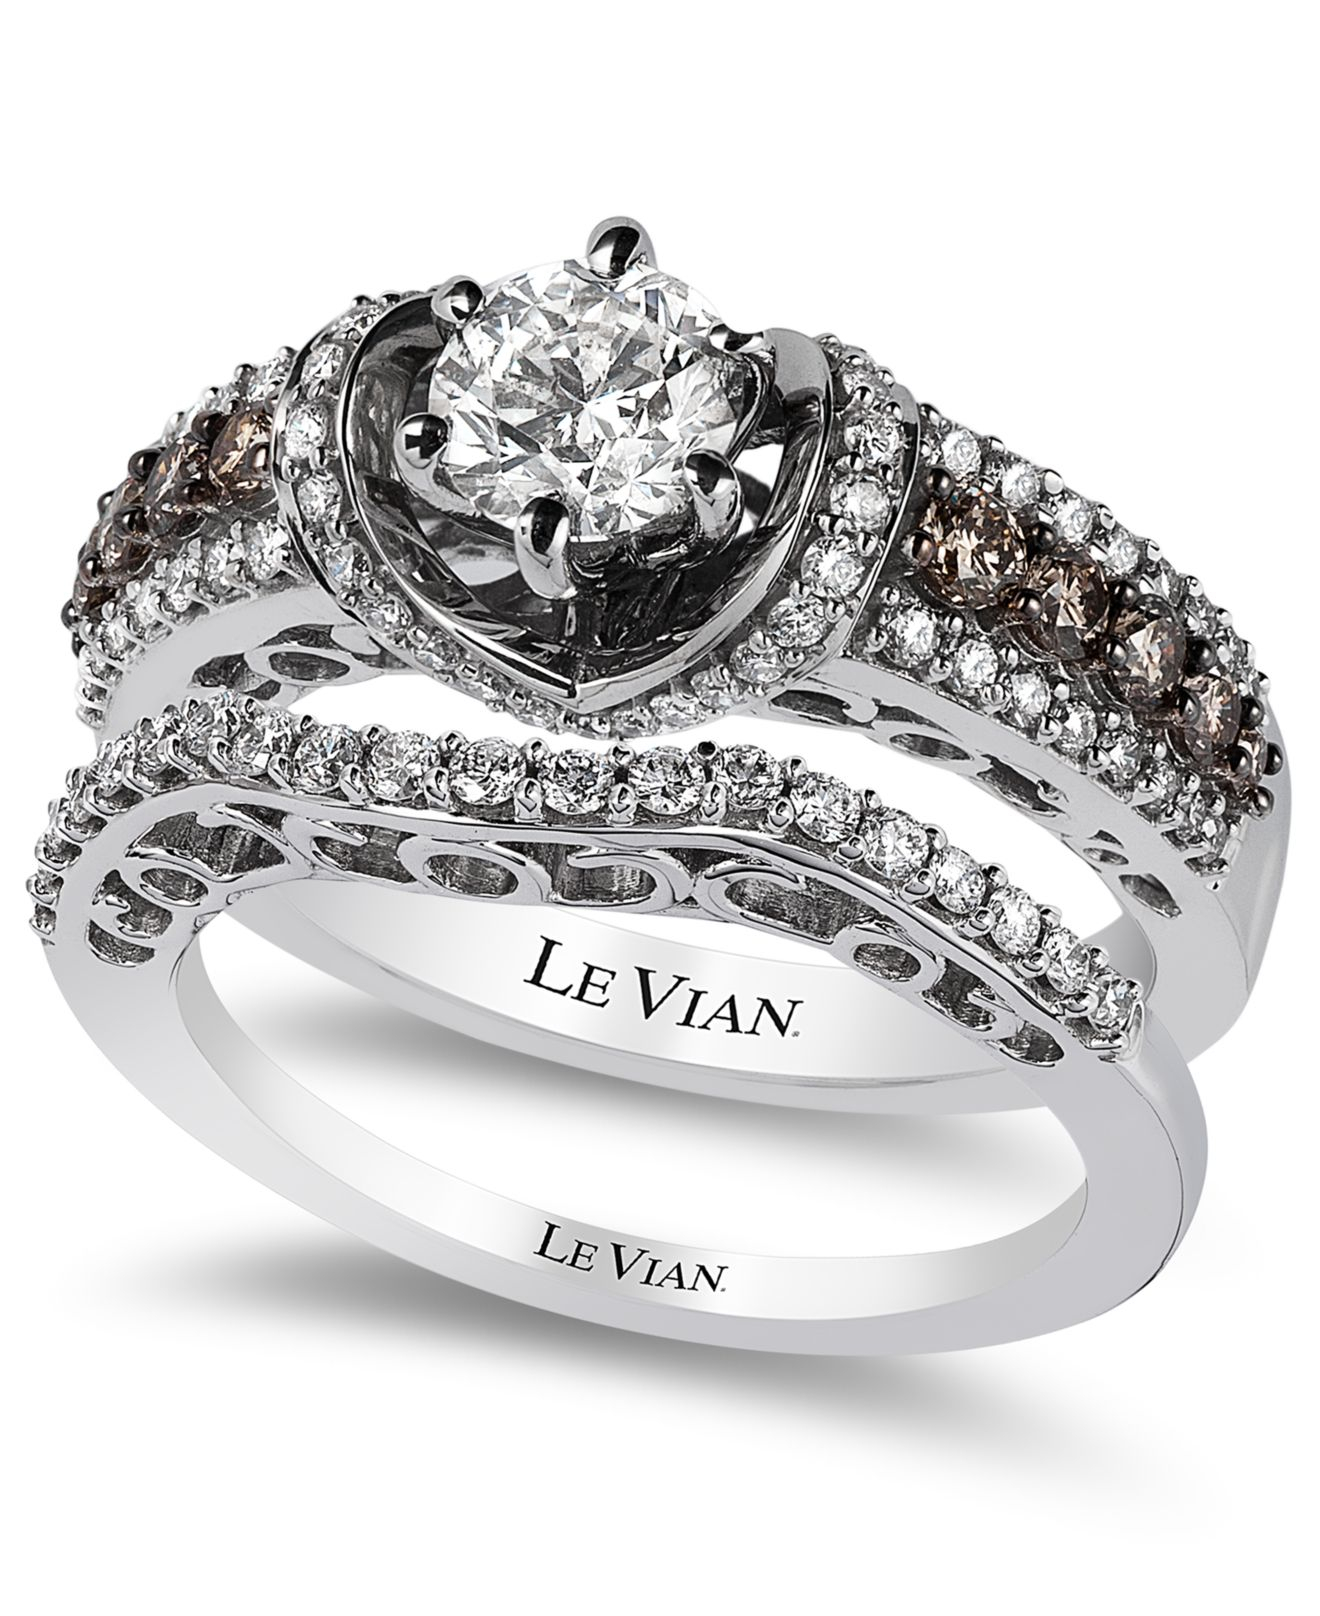 e8a18c692 Gallery. Previously sold at: Macy's · Women's Engagement Rings Women's Le  Vian Chocolate ...